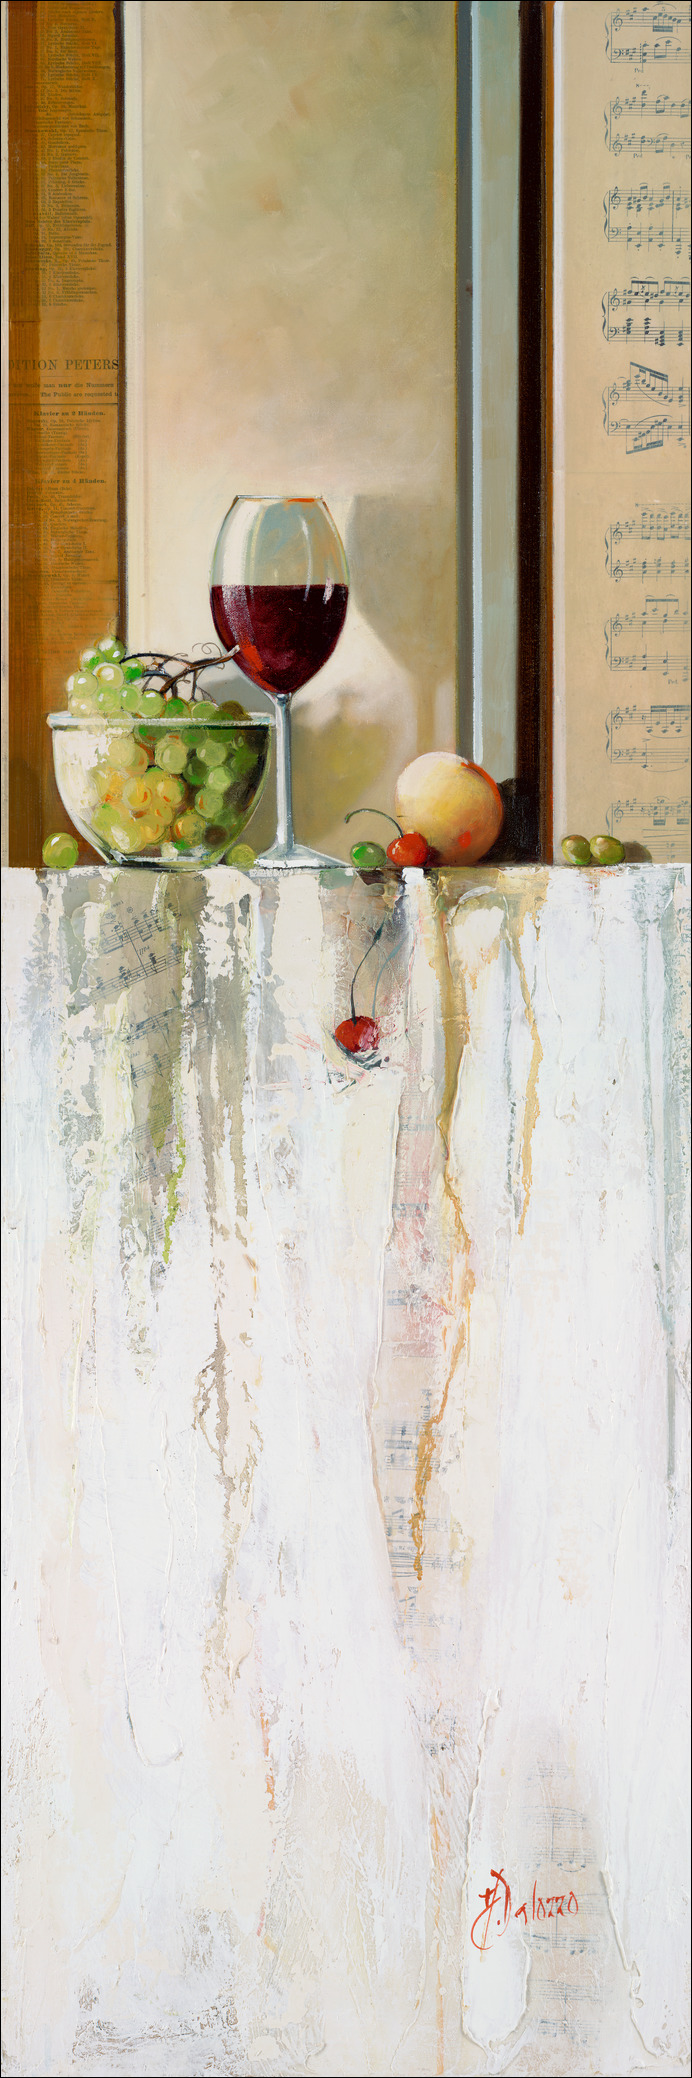 Peaceful-Moment-Triptych-Right-Panel-Judith-Dalozzo